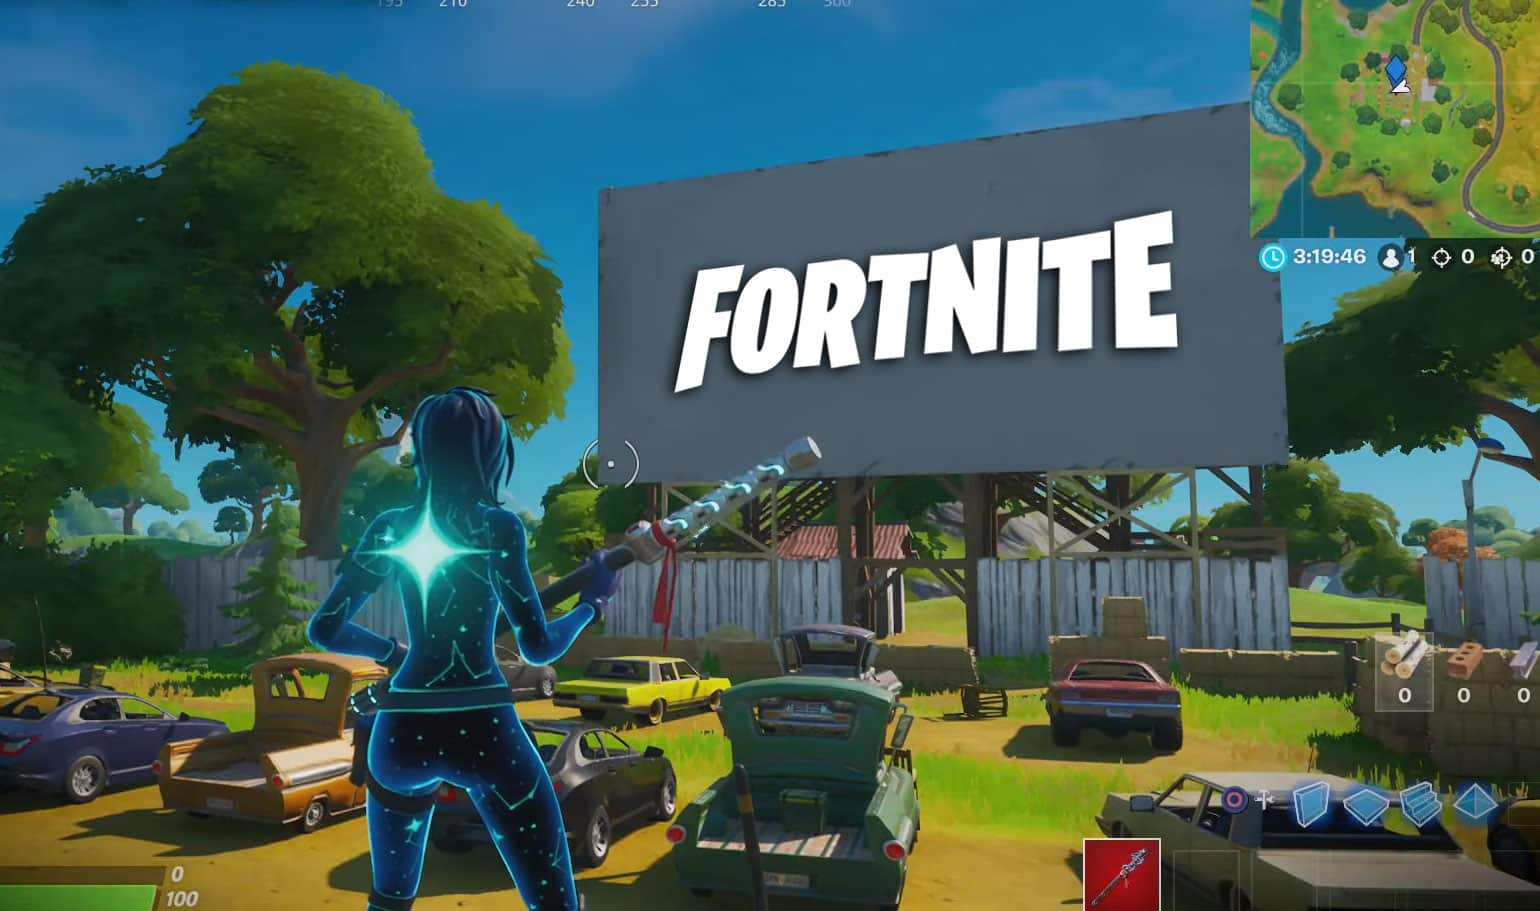 Fortnite Lonely Recliner Radio Station, Outdoor Movie Theater Locations